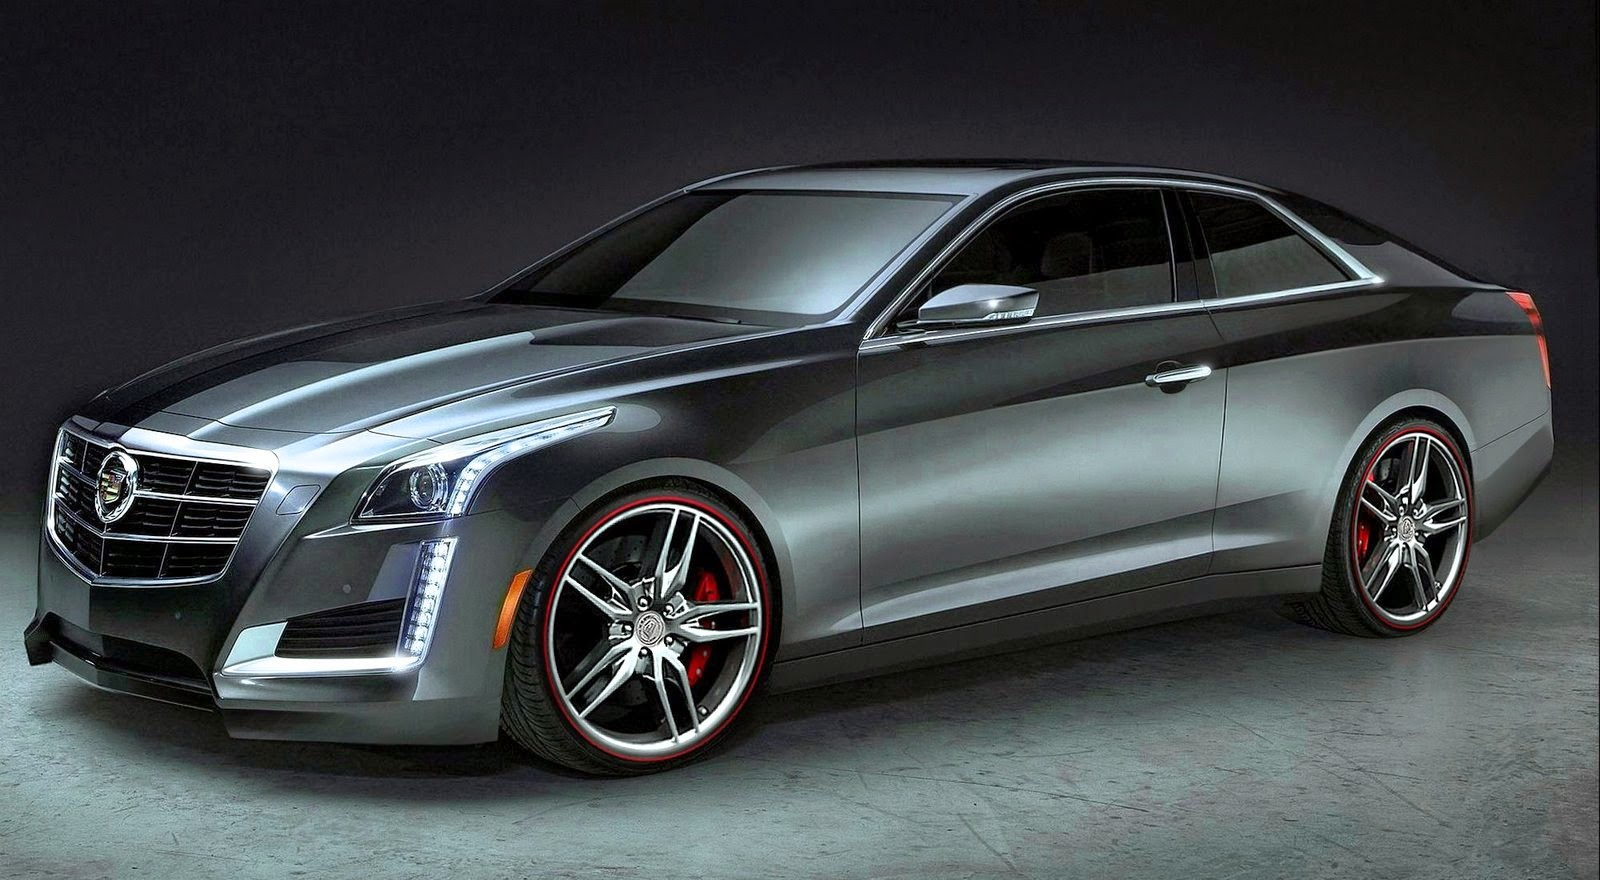 2016 cadillac ats pictures information and specs auto. Black Bedroom Furniture Sets. Home Design Ideas